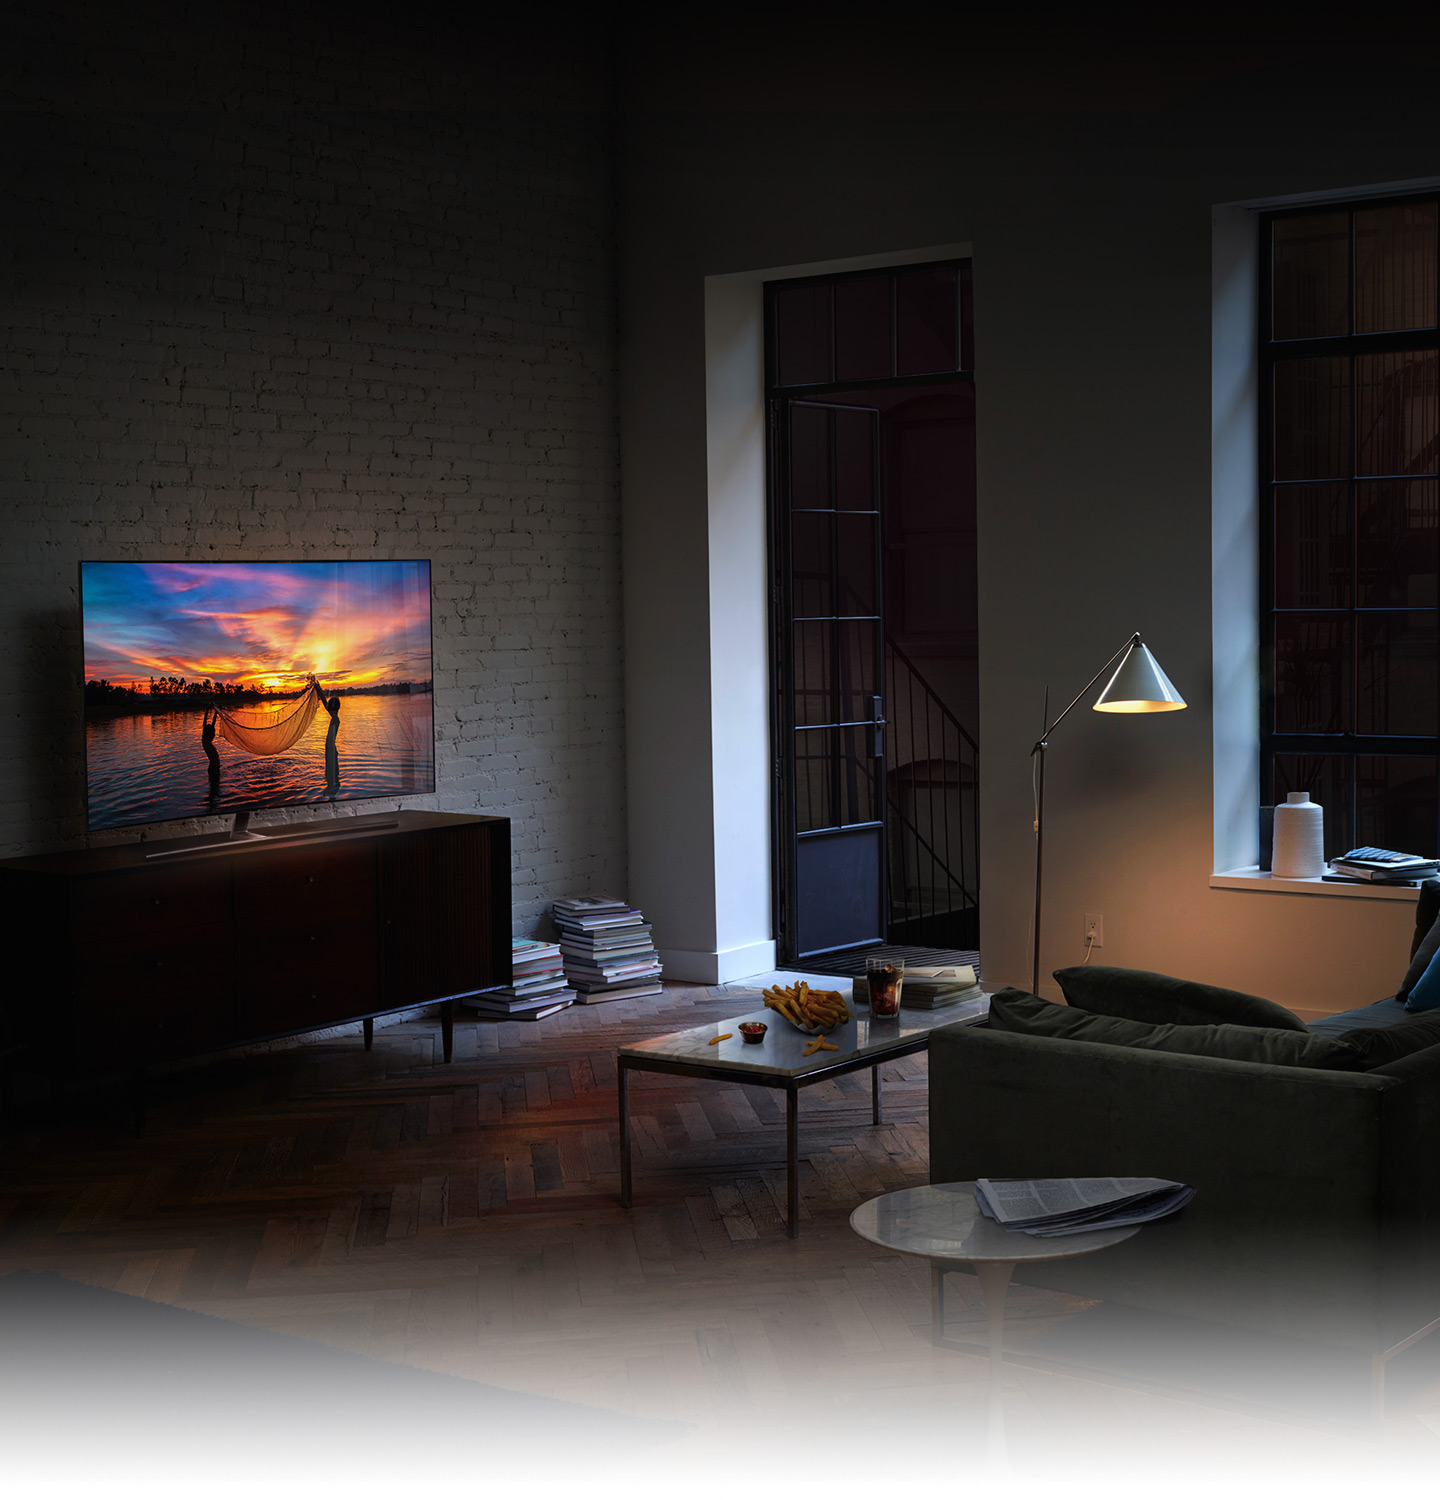 QLED TV has been set in the living room in the early evening and on its display shows children fishing with their net in the seashore glowing with the setting sun like a movie.